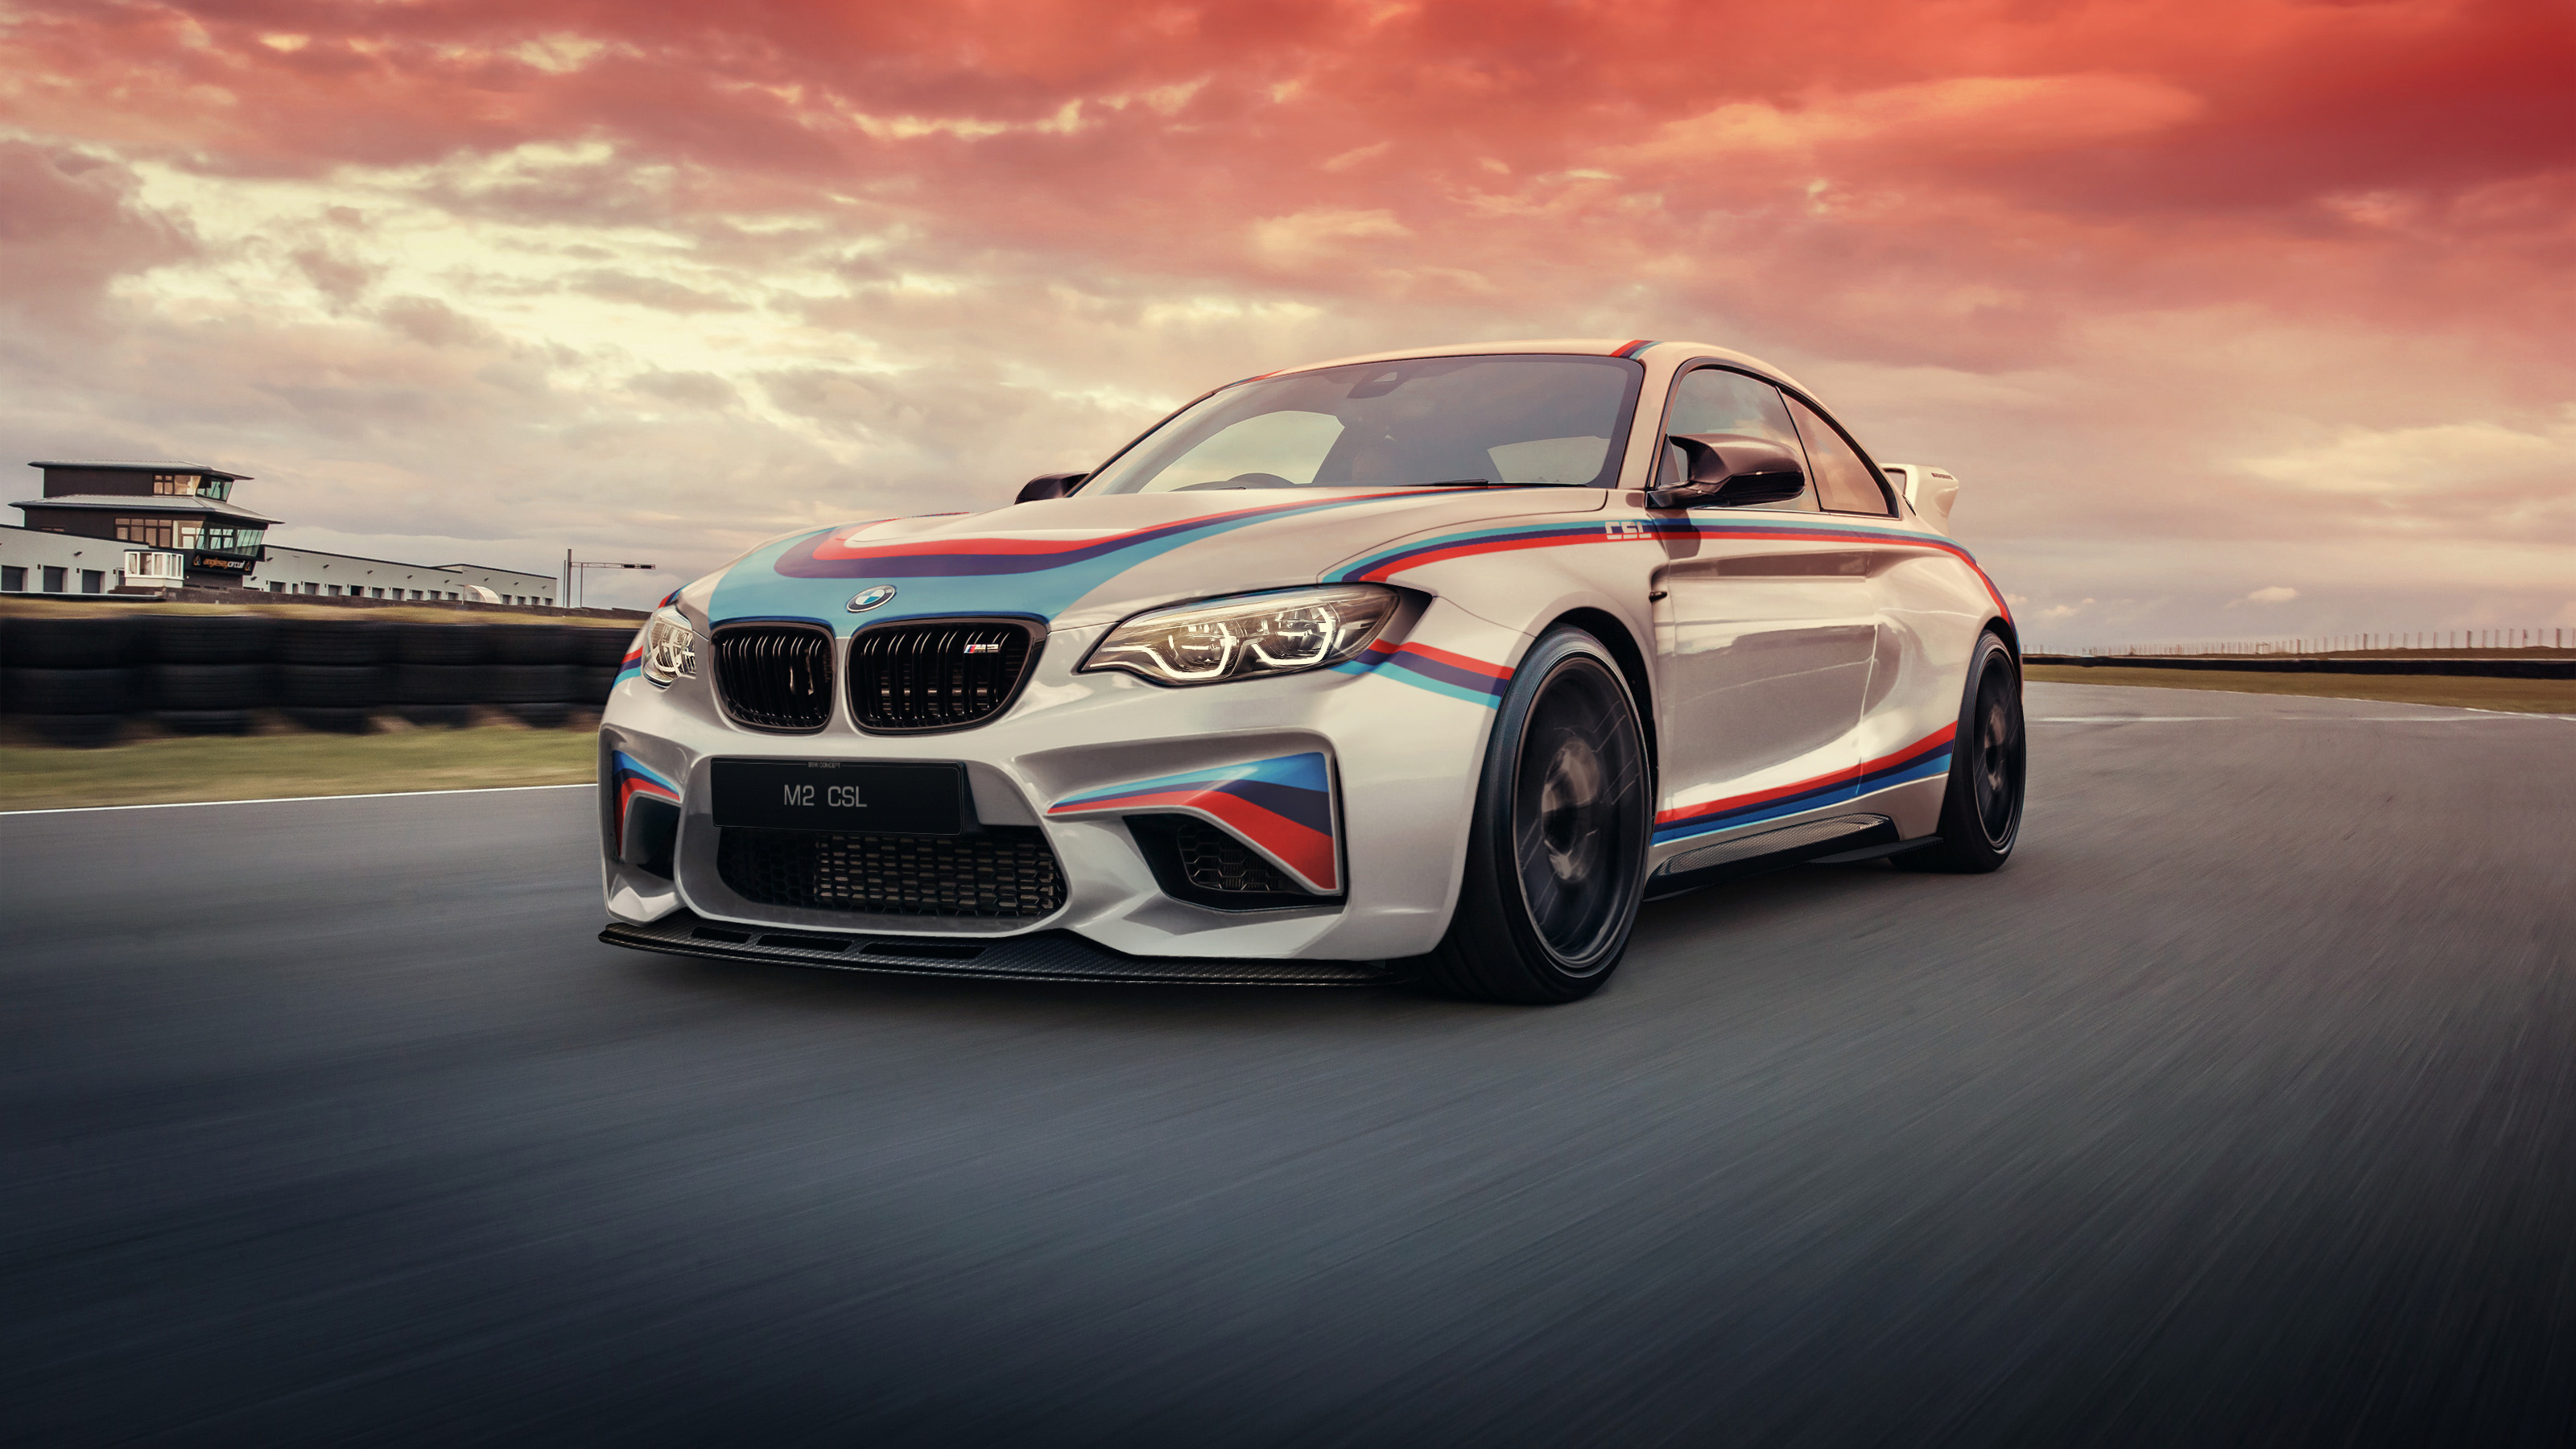 2017 BMW M2 CSL Wallpaper | HD Car Wallpapers